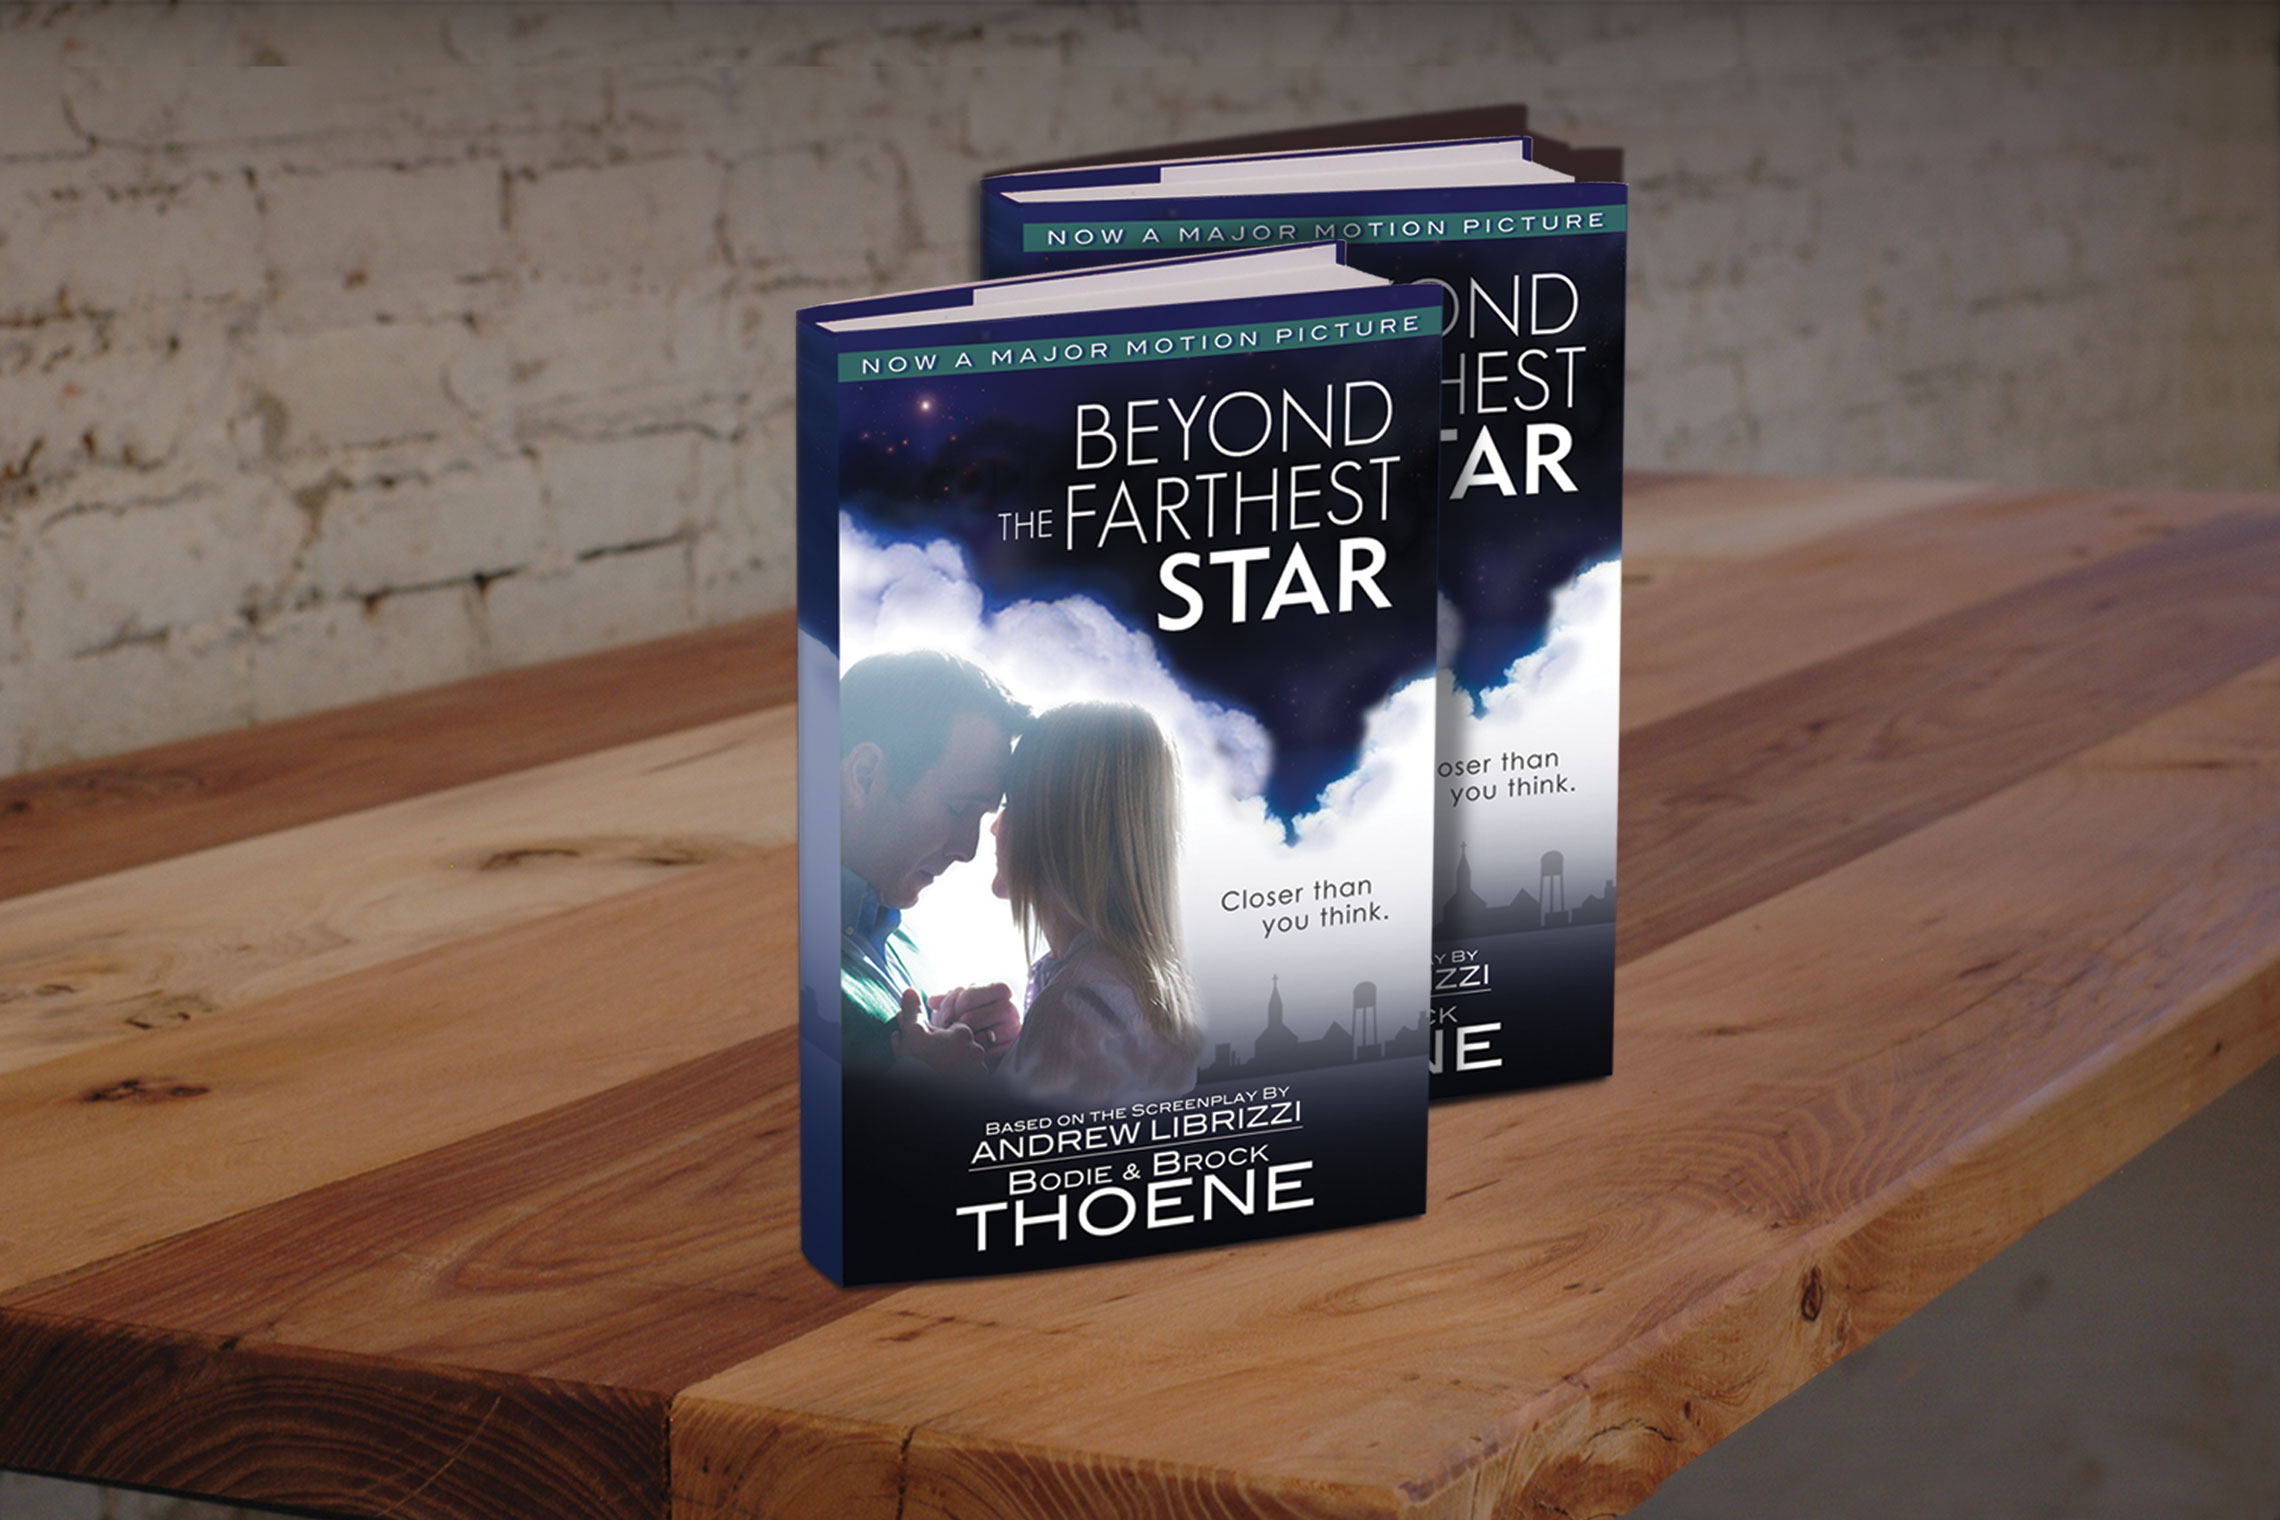 Beyond the Farthest Star The Novel - Based on the Screenplay by Andrew Librizzi and Written by Bodie & Brock Thoene